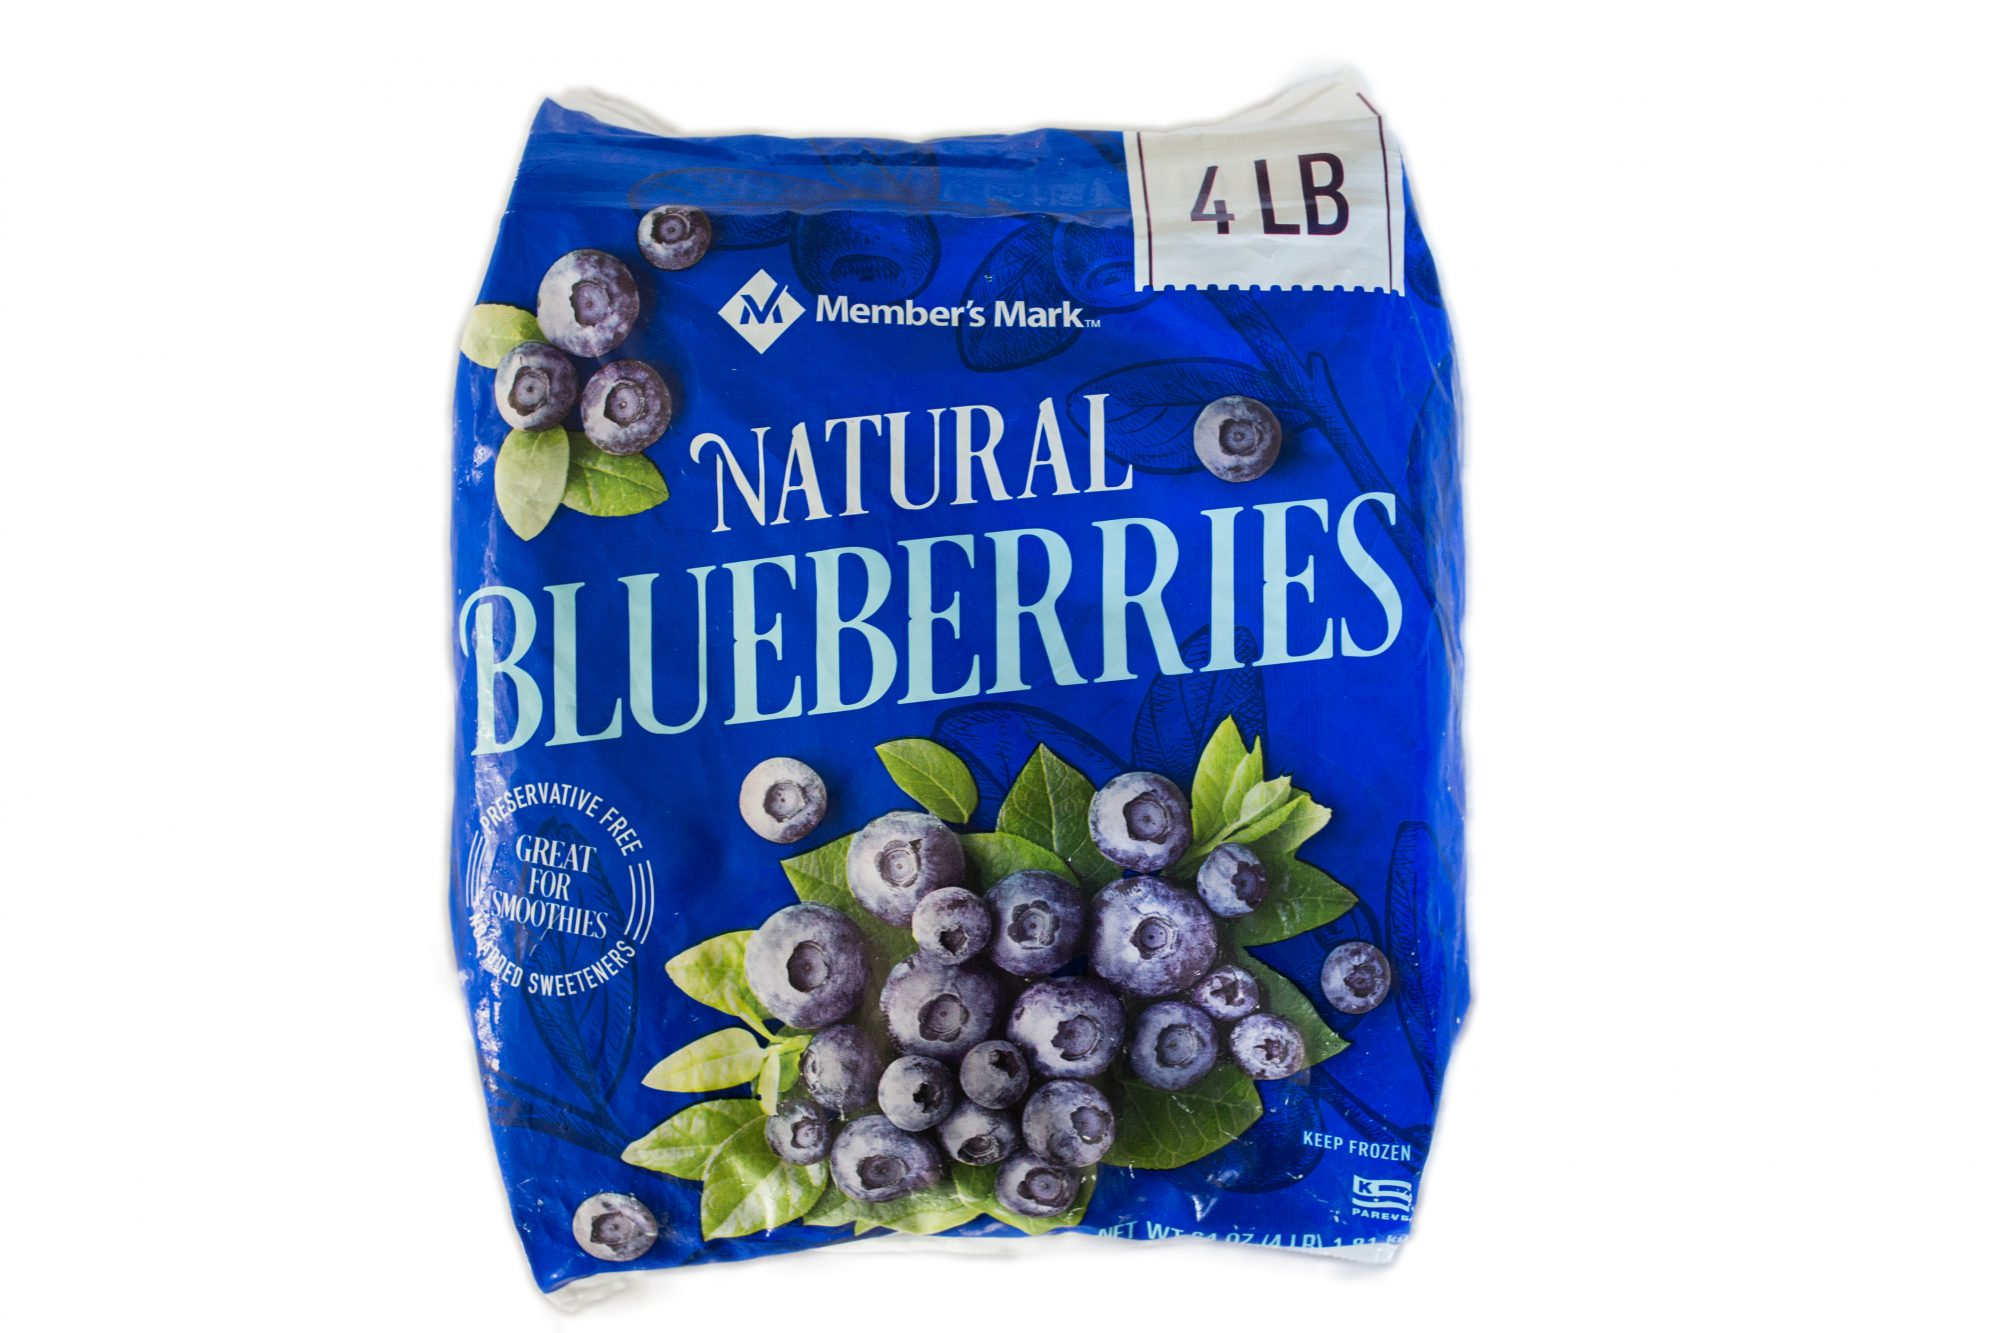 Sam's Club Member's Mark Blueberries